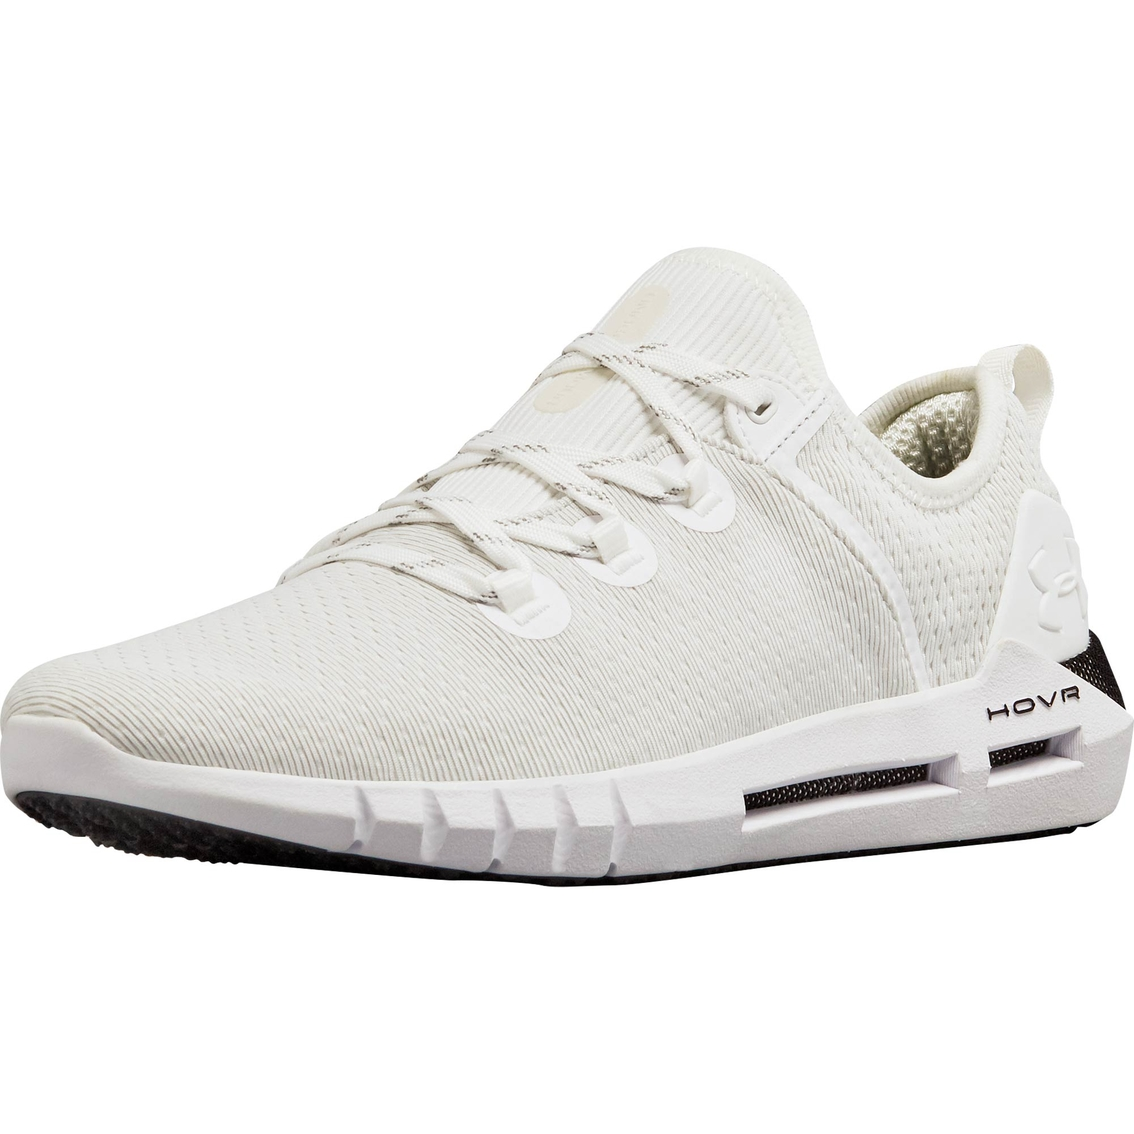 huge selection of 404e0 3298e Under Armour Hovr Men's Running Shoes | Running | Shoes ...